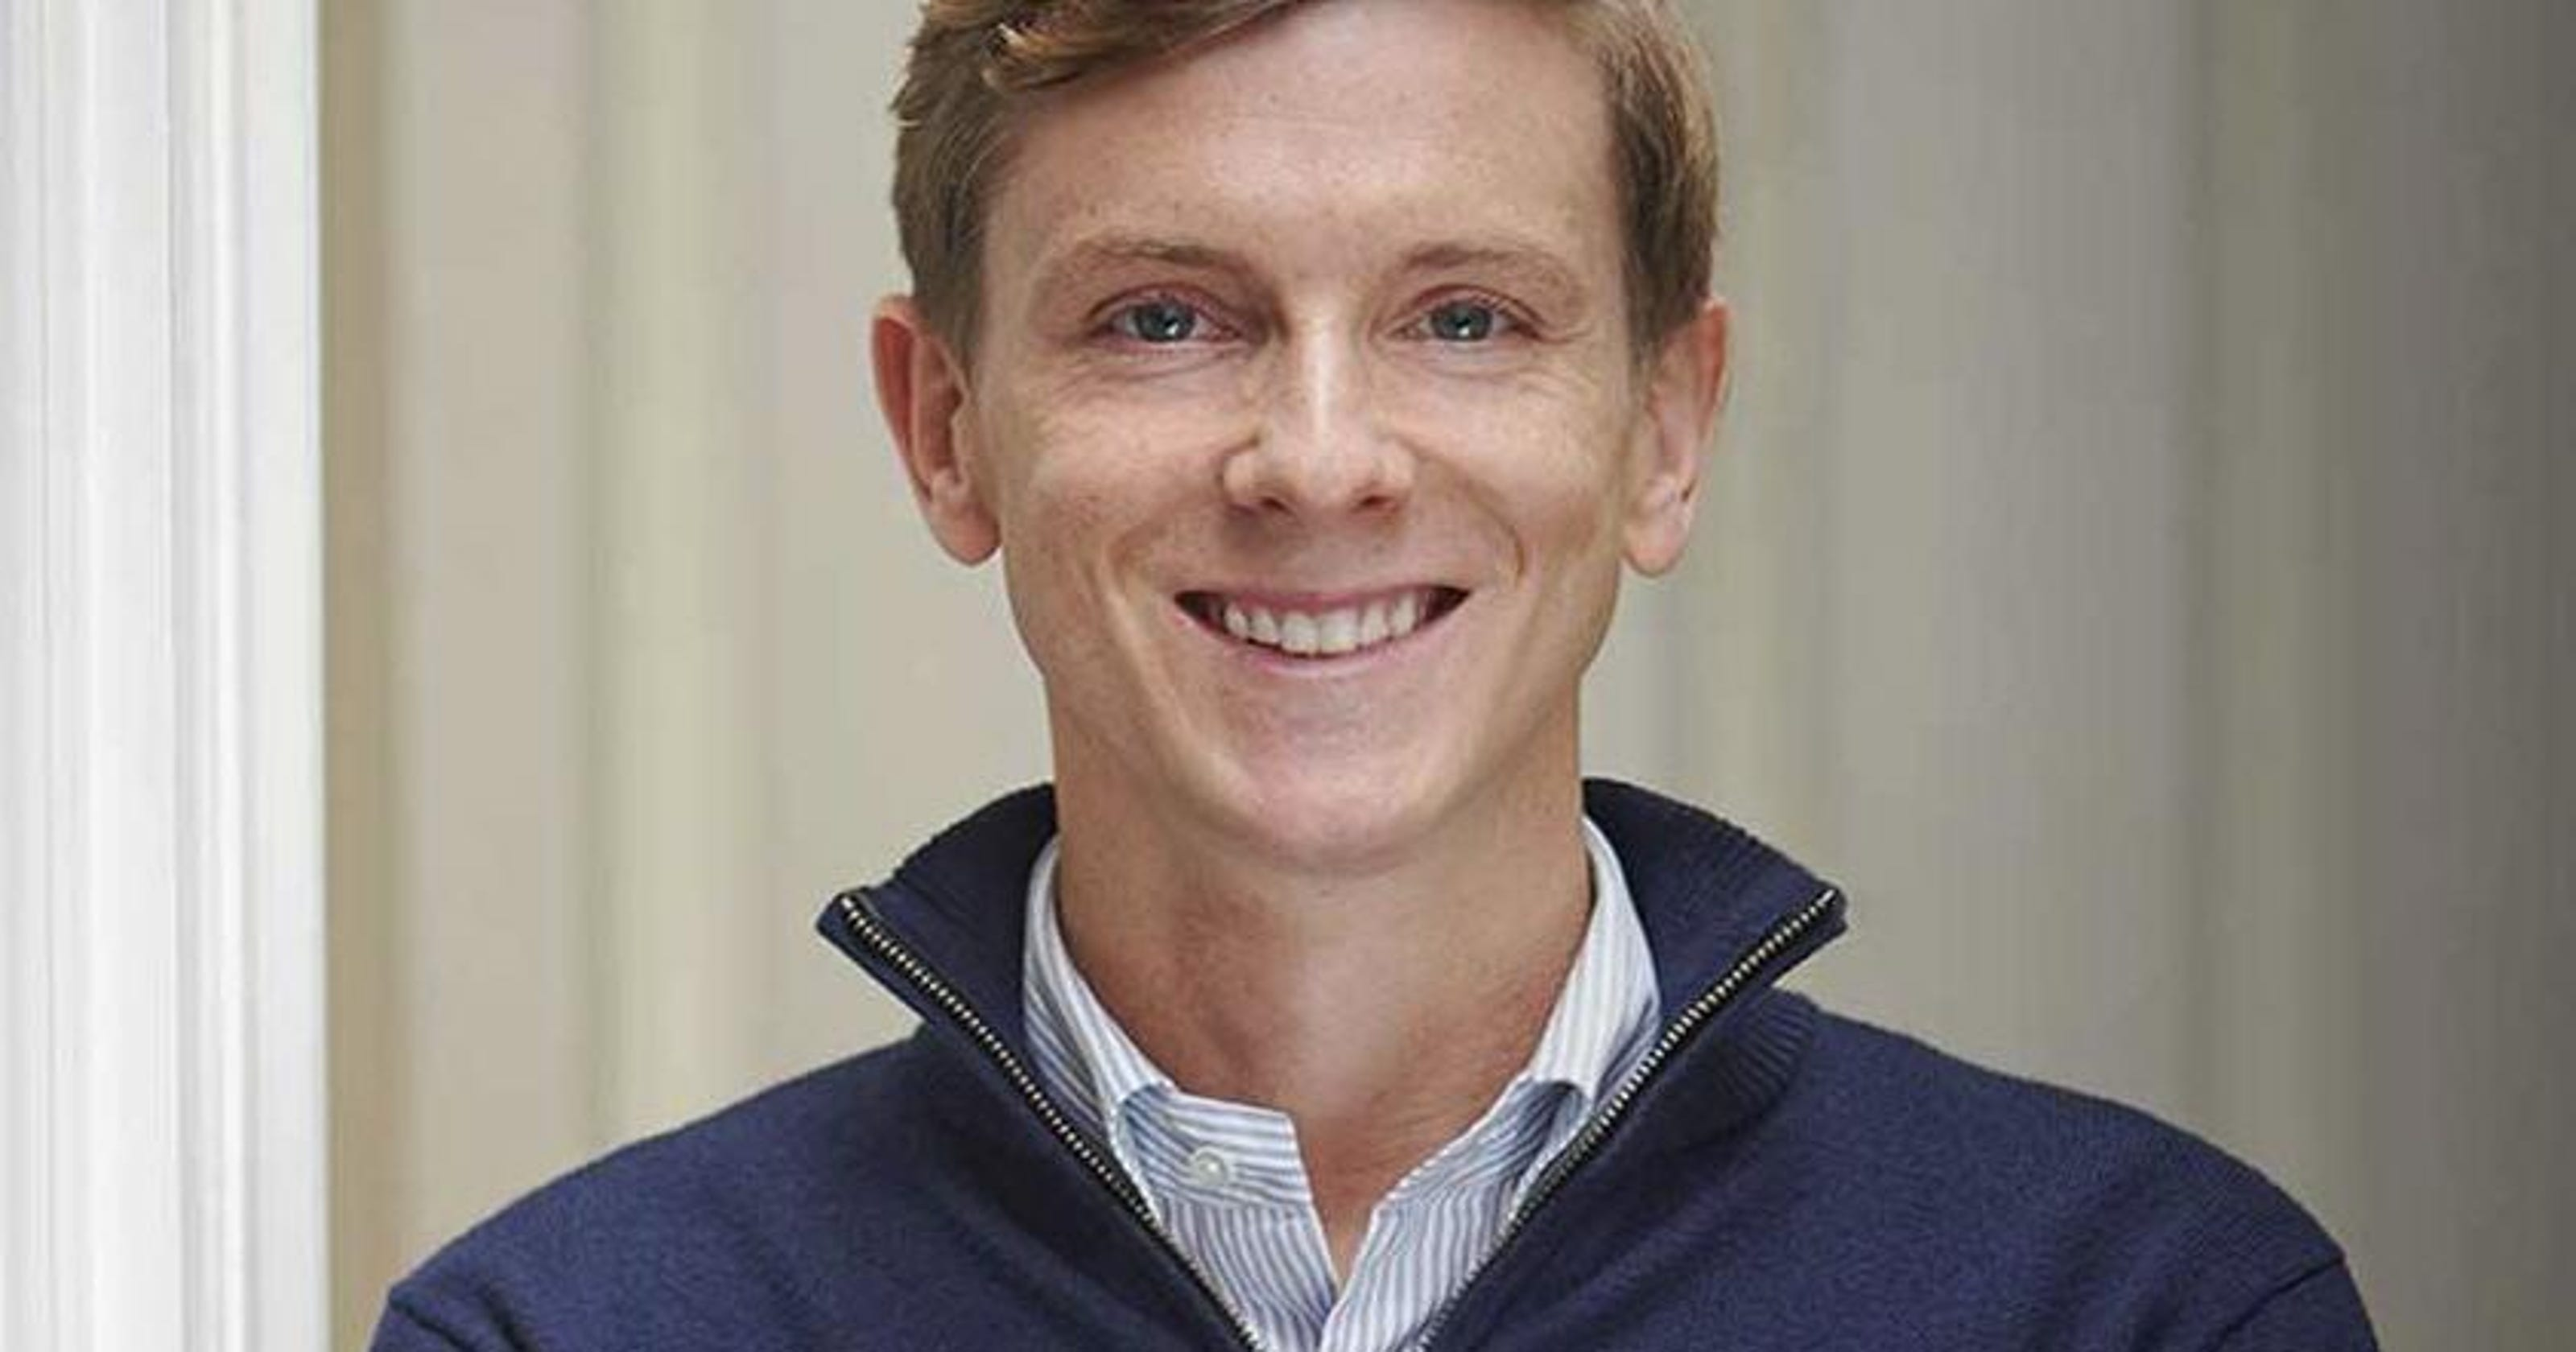 Facebook Co-founder Chris Hughes: Time To Break Up Company